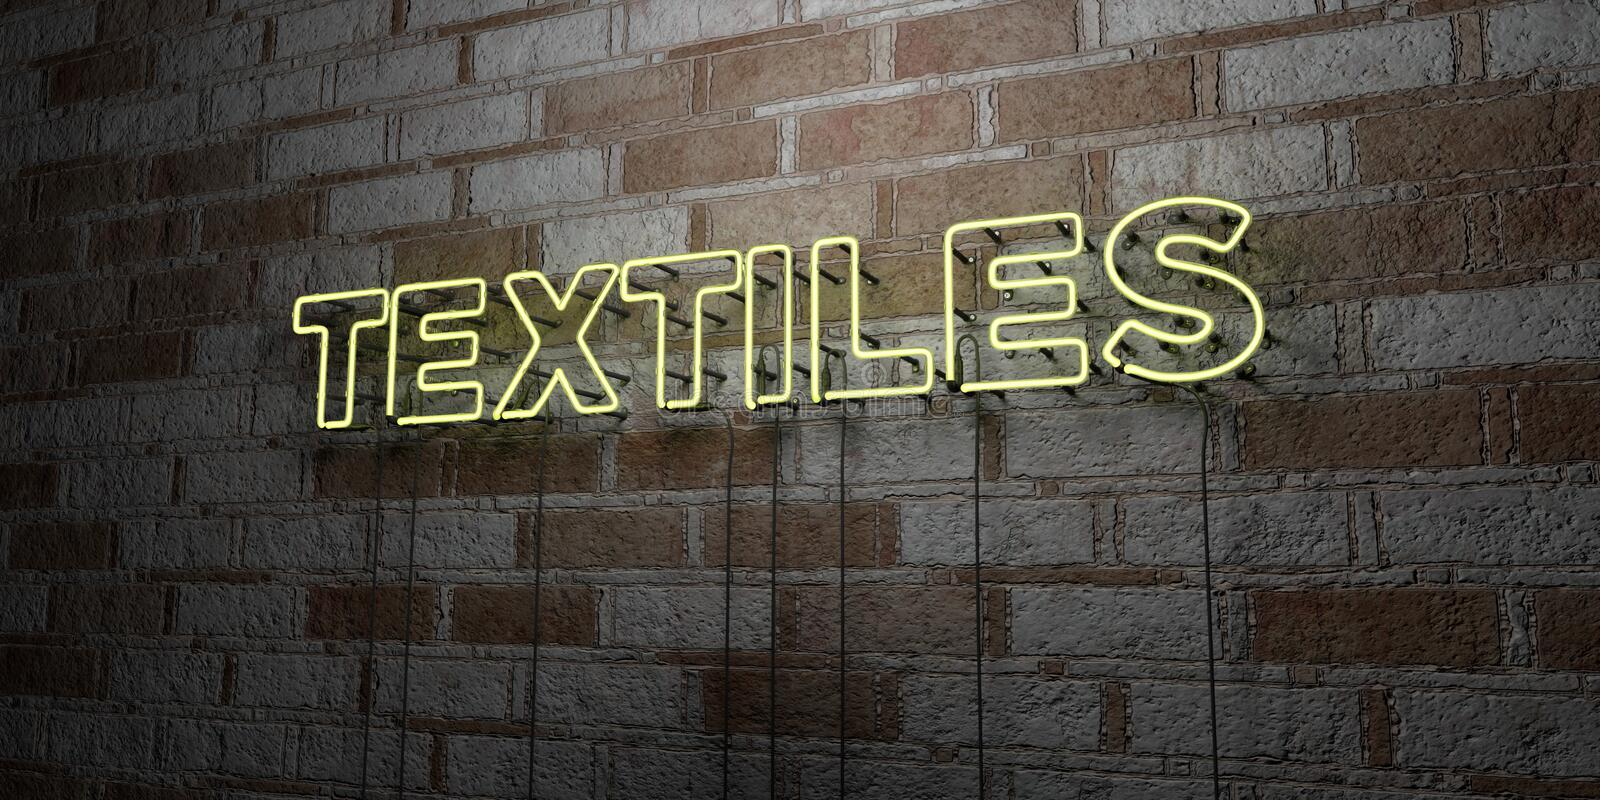 TEXTILES - Glowing Neon Sign on stonework wall - 3D rendered royalty free stock illustration. Can be used for online banner ads and direct mailers vector illustration